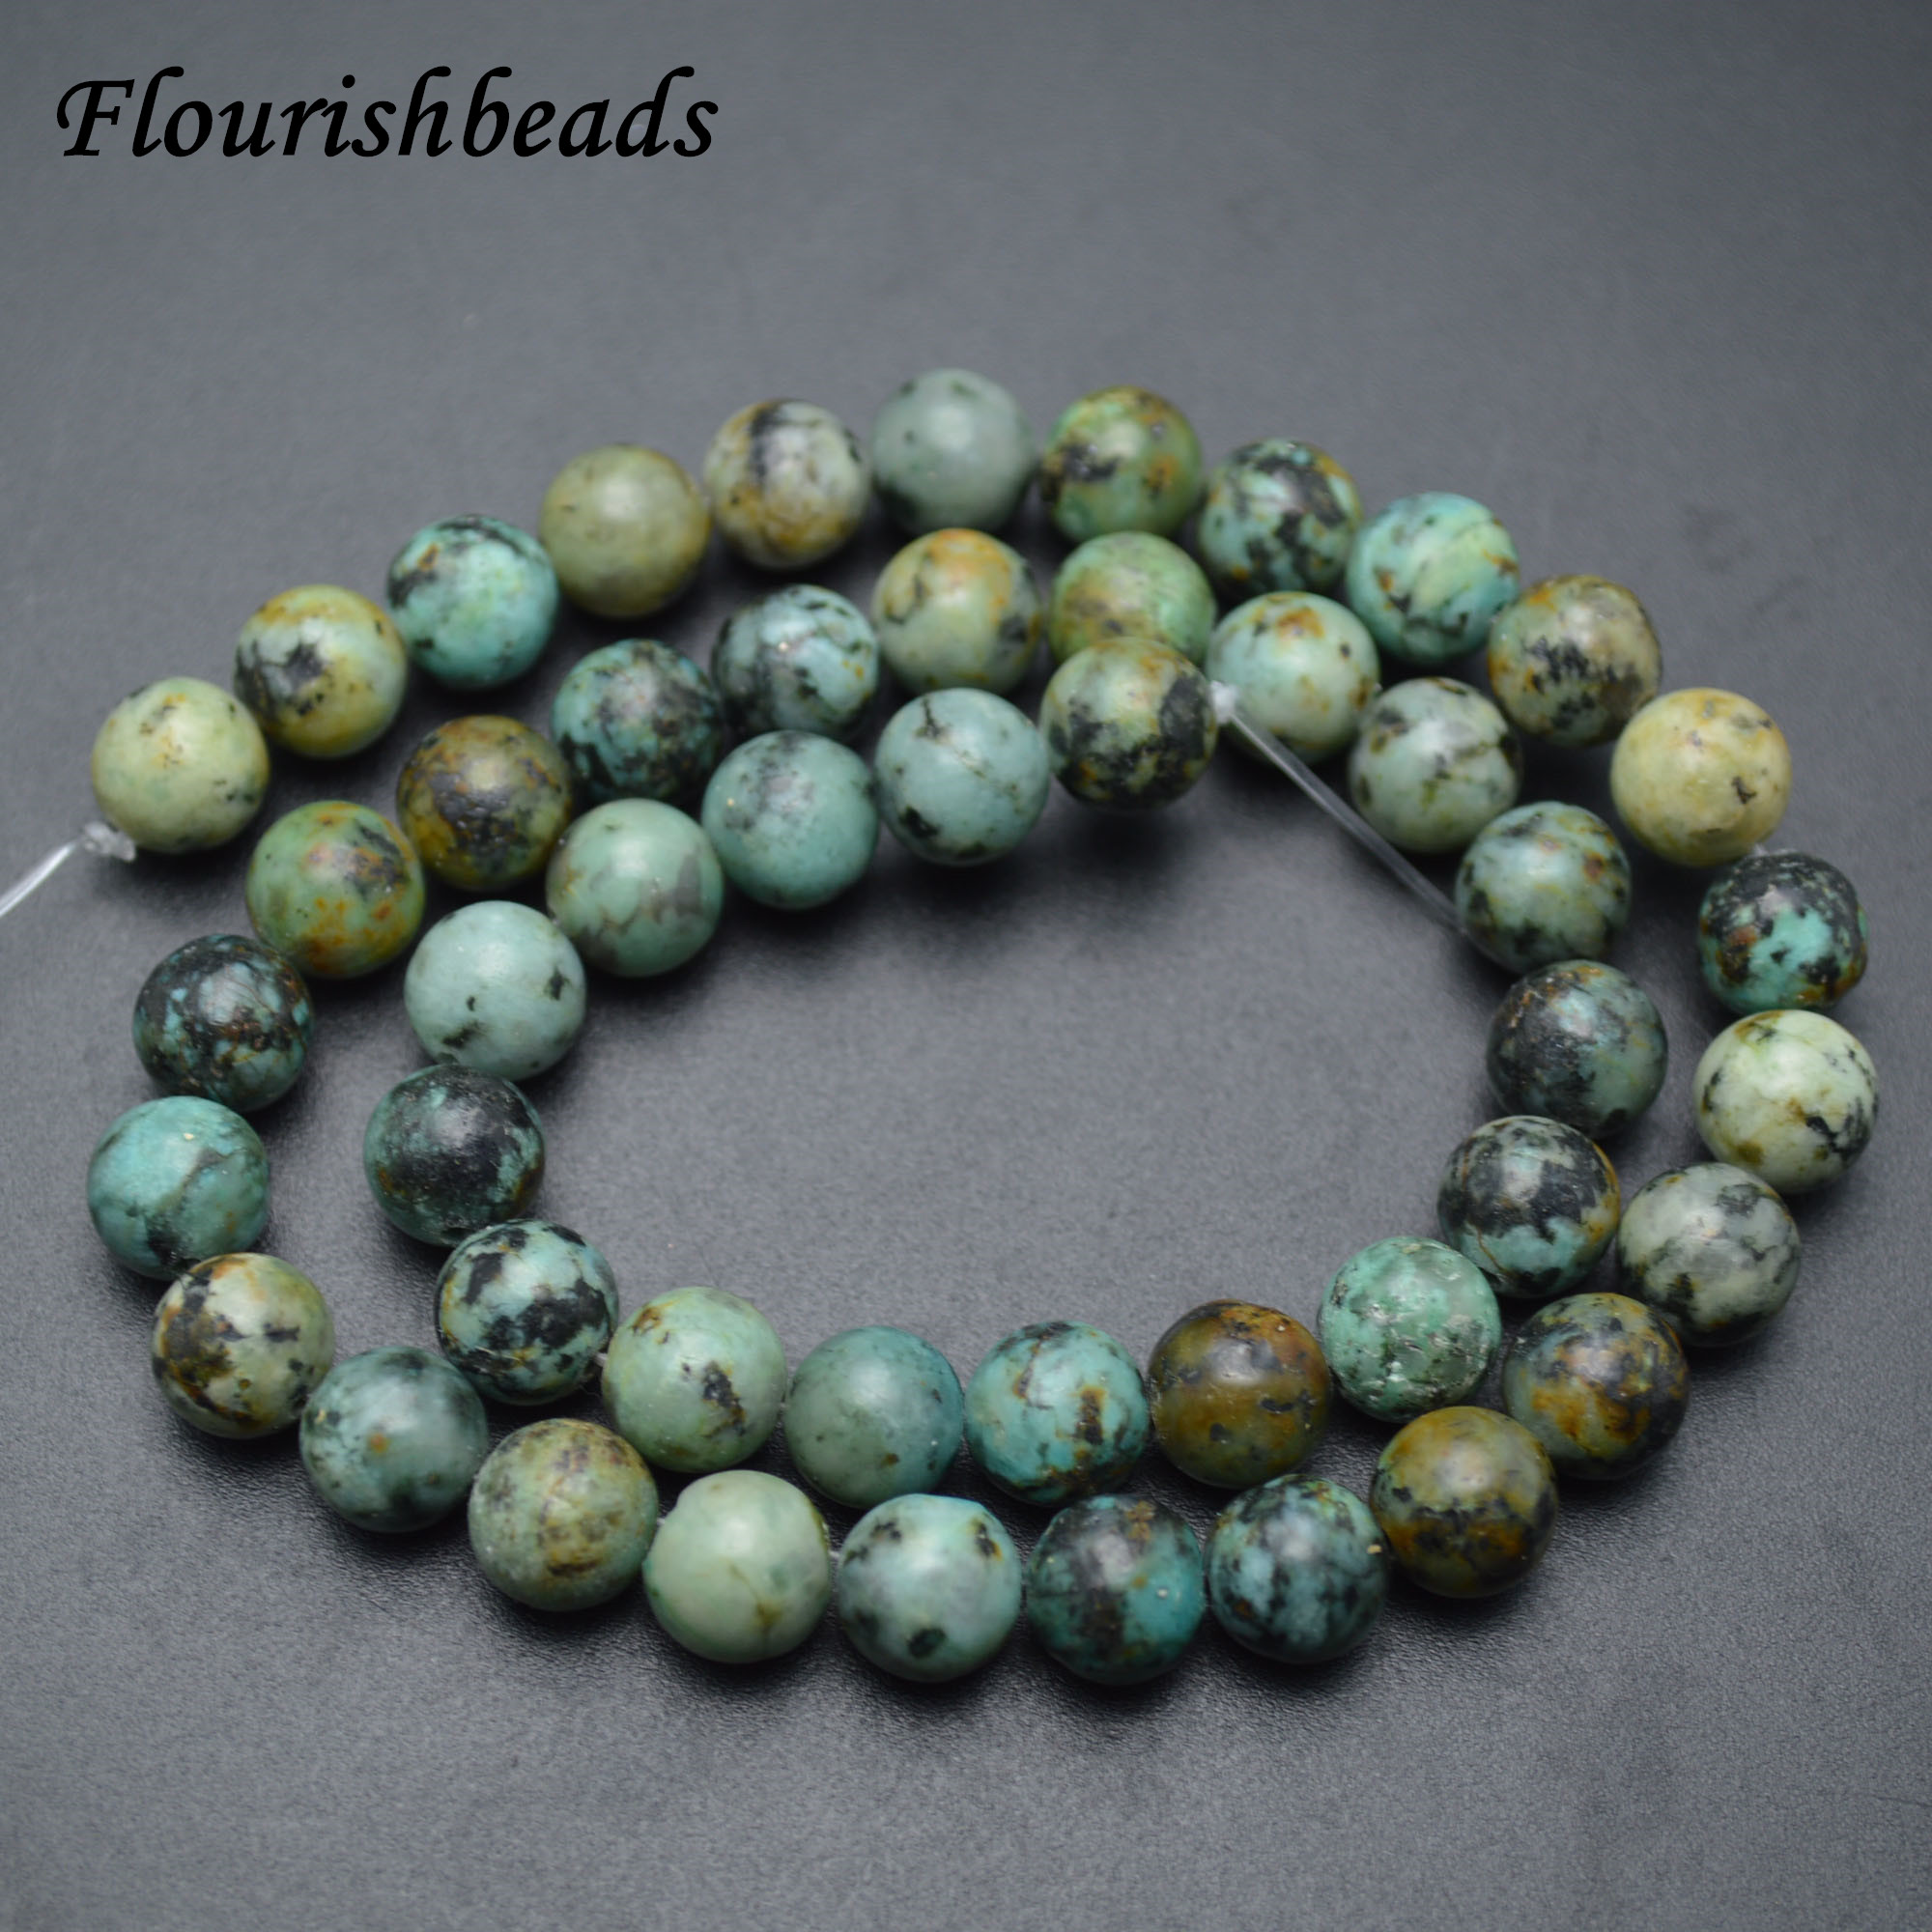 wholesale through turquoise untold gemstone tracing arizona kjzz legacy content beads polished s time